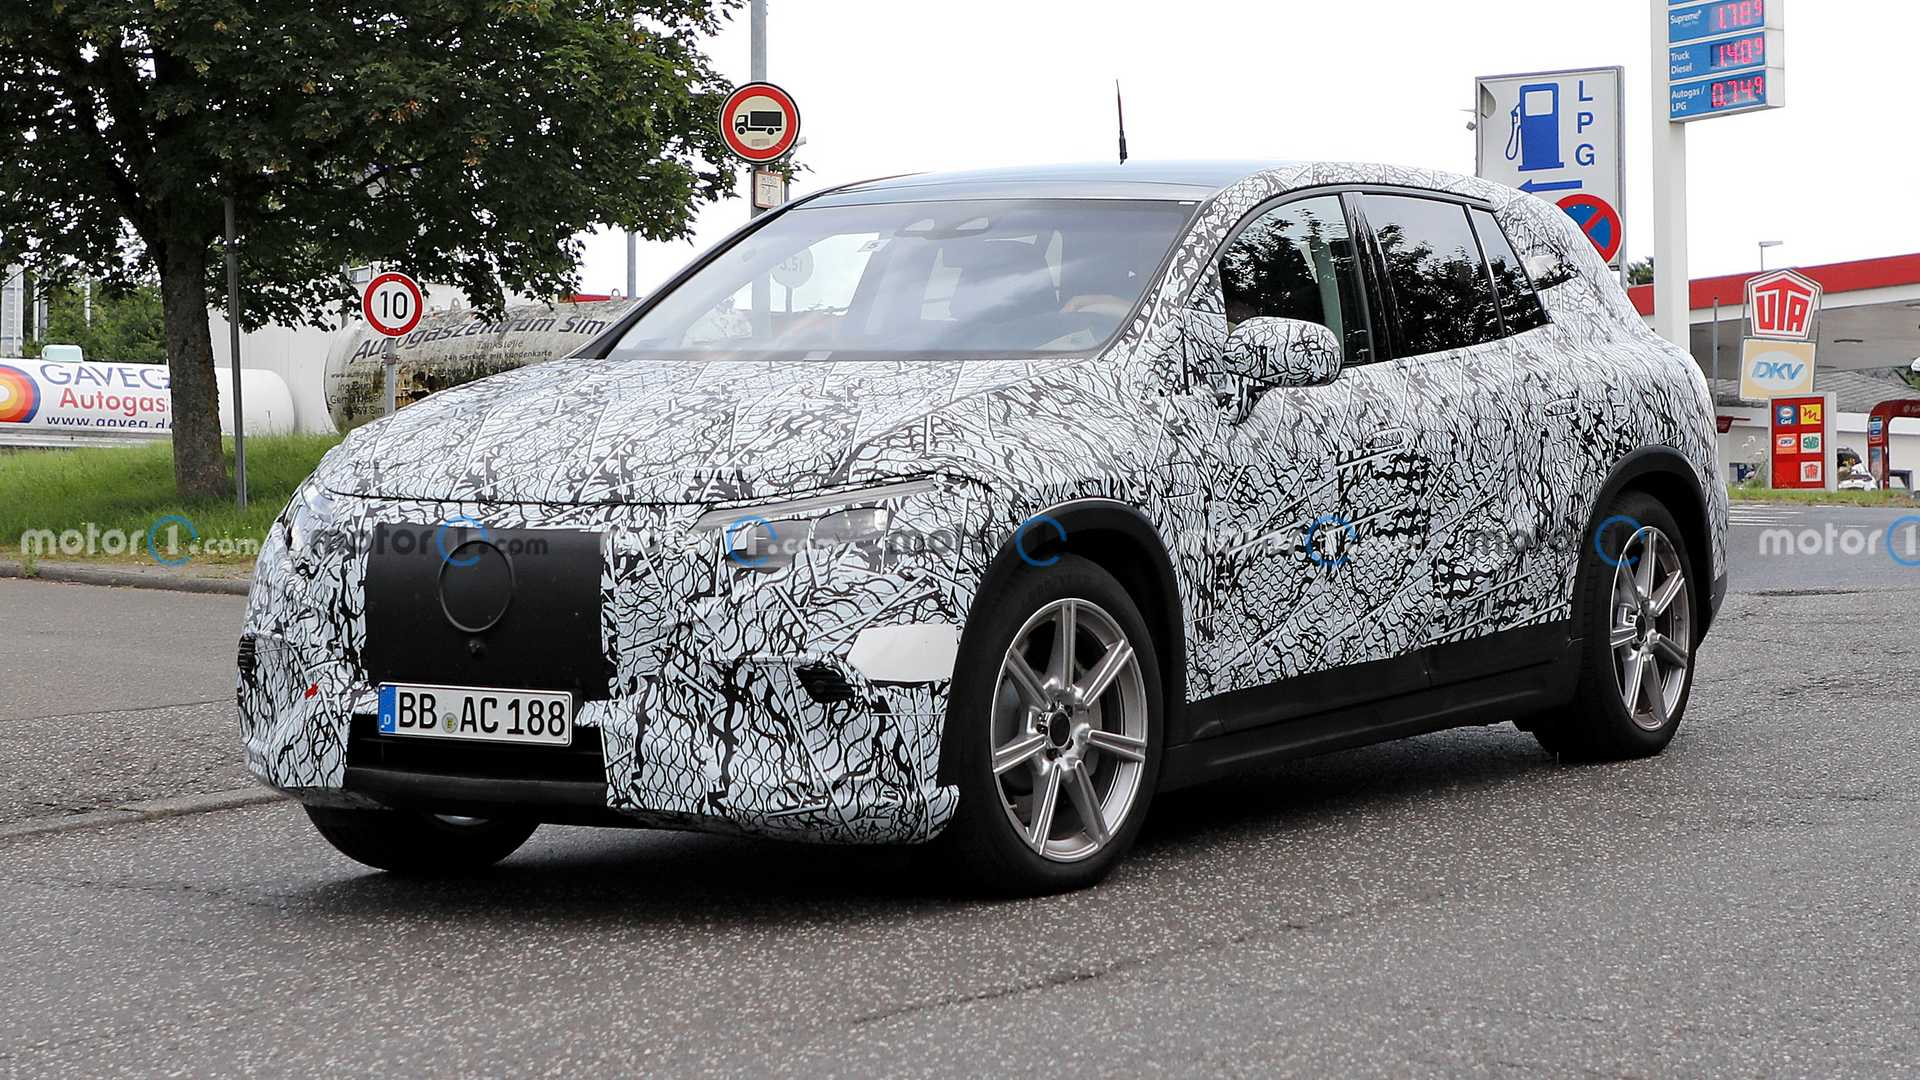 https://cdn.motor1.com/images/mgl/xNpMy/s6/mercedes-eqs-suv-spied-with-production-lights.jpg